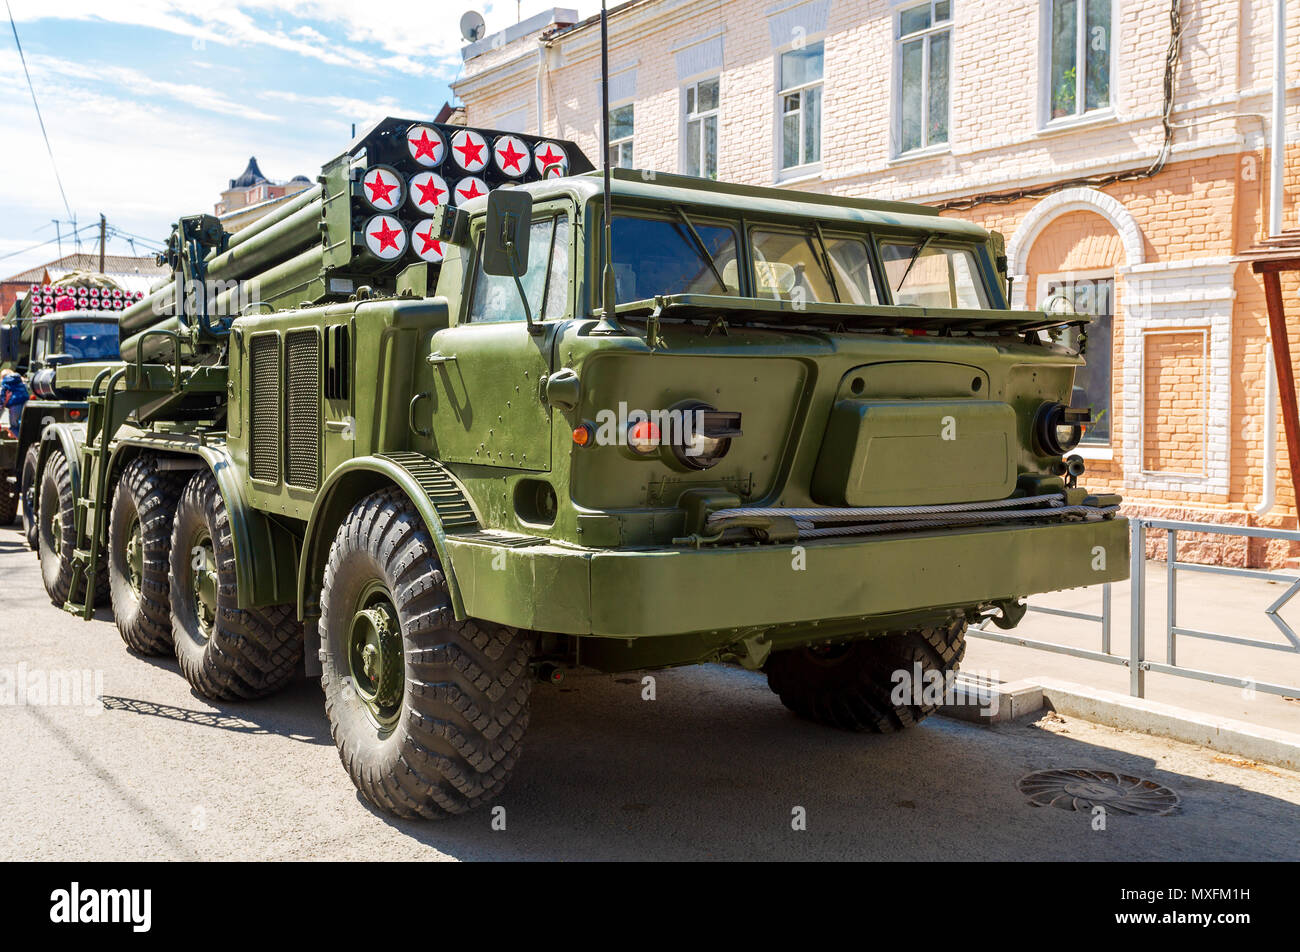 [100% Home made] ZIL 135 Samara-russia-may-5-2018-russian-self-propelled-multiple-rocket-launcher-system-bm-27-uragan-hurricane-on-zil-135-chassis-at-the-city-street-be-MXFM1H